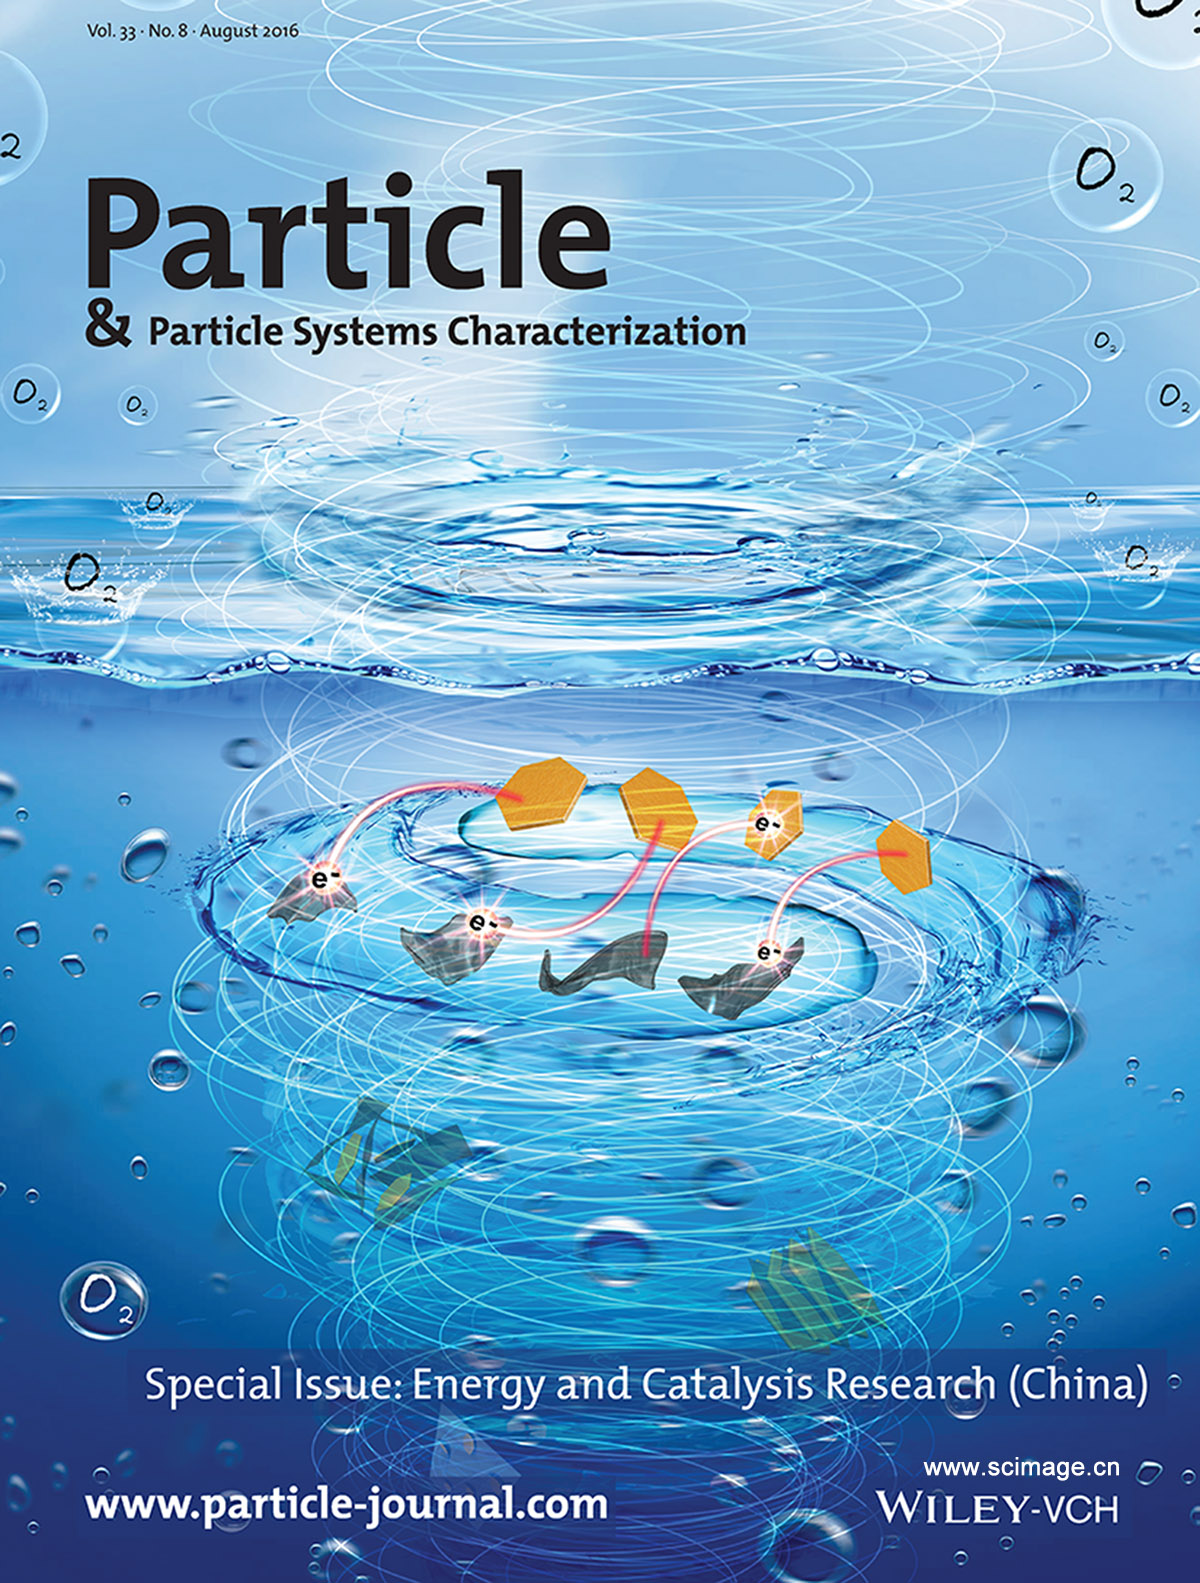 Hybrid Electrocatalysts: Advances in Hybrid Electrocatalysts for Oxygen Evolution Reactions: Rational Integration of NiFe Layered Double Hydroxides and Nanocarbon (Part. Part. Syst. Charact. 8/2016) (page 447)